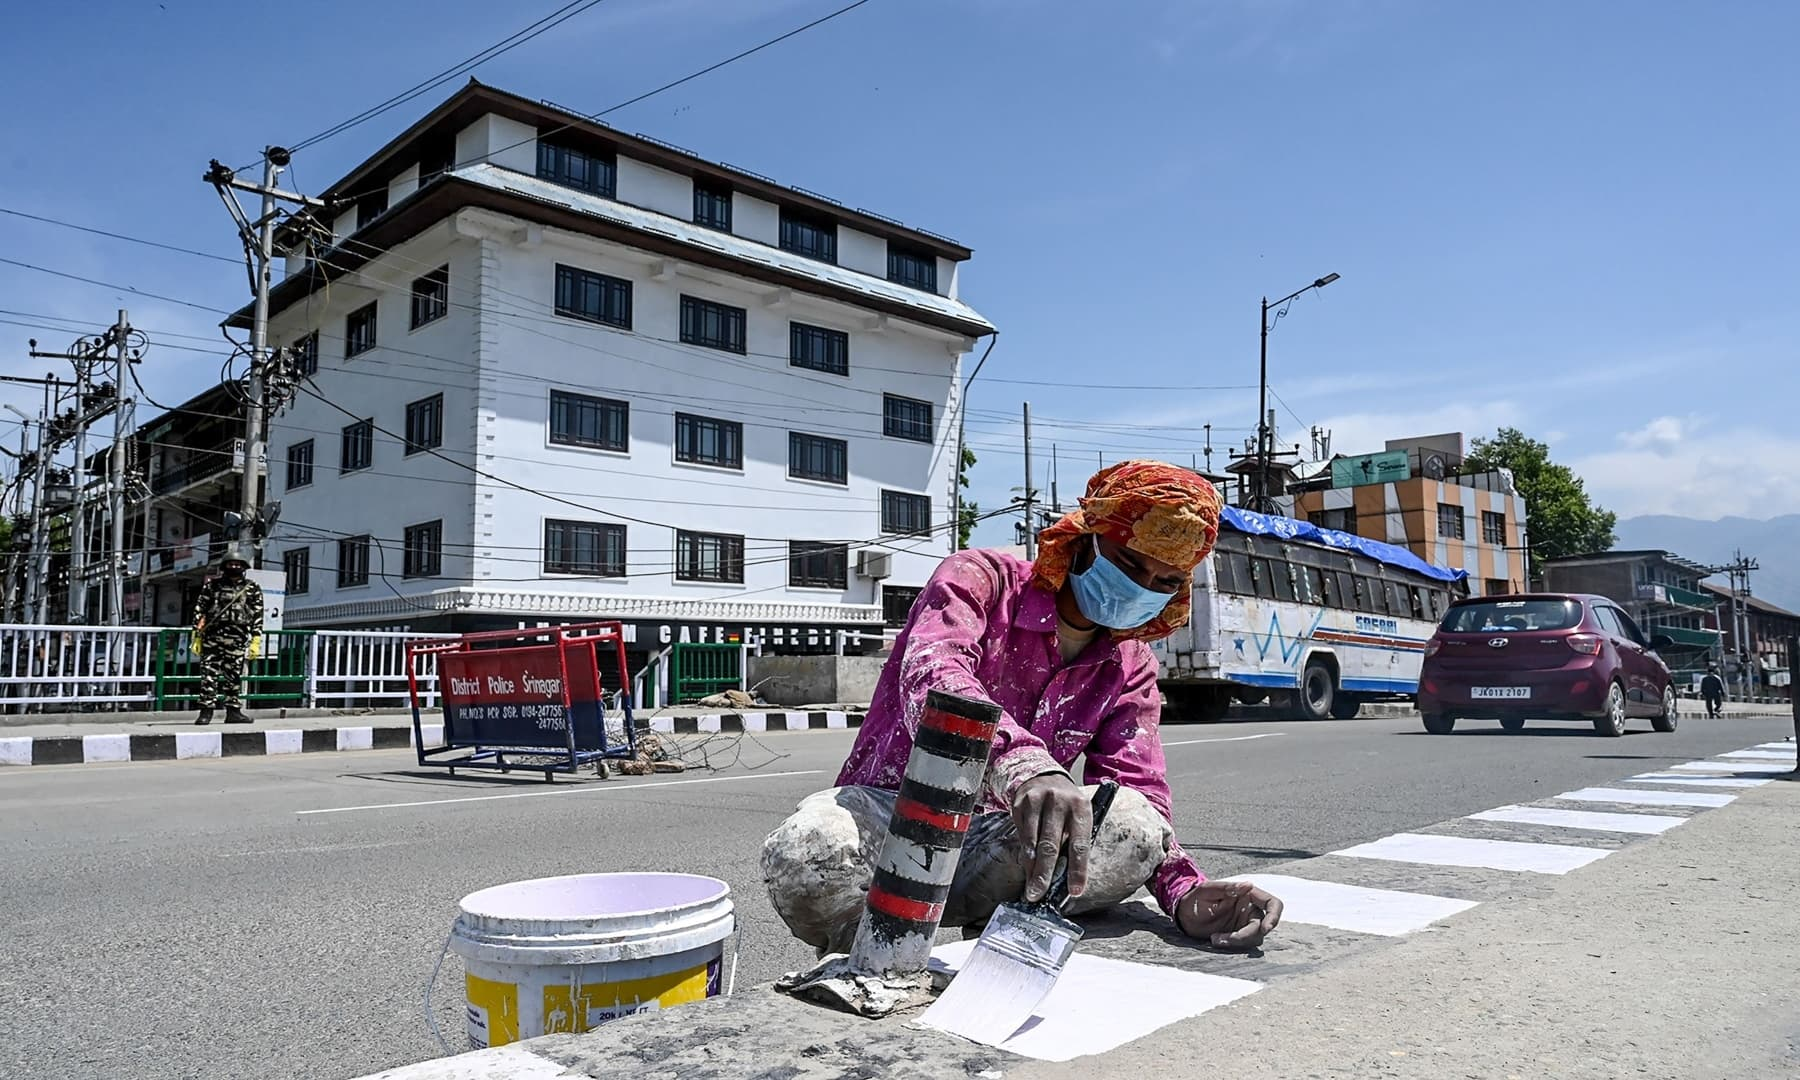 A migrant labourer paints white road markings on Labour Day in Srinagar, Indian-occupied Kashmir. — AFP